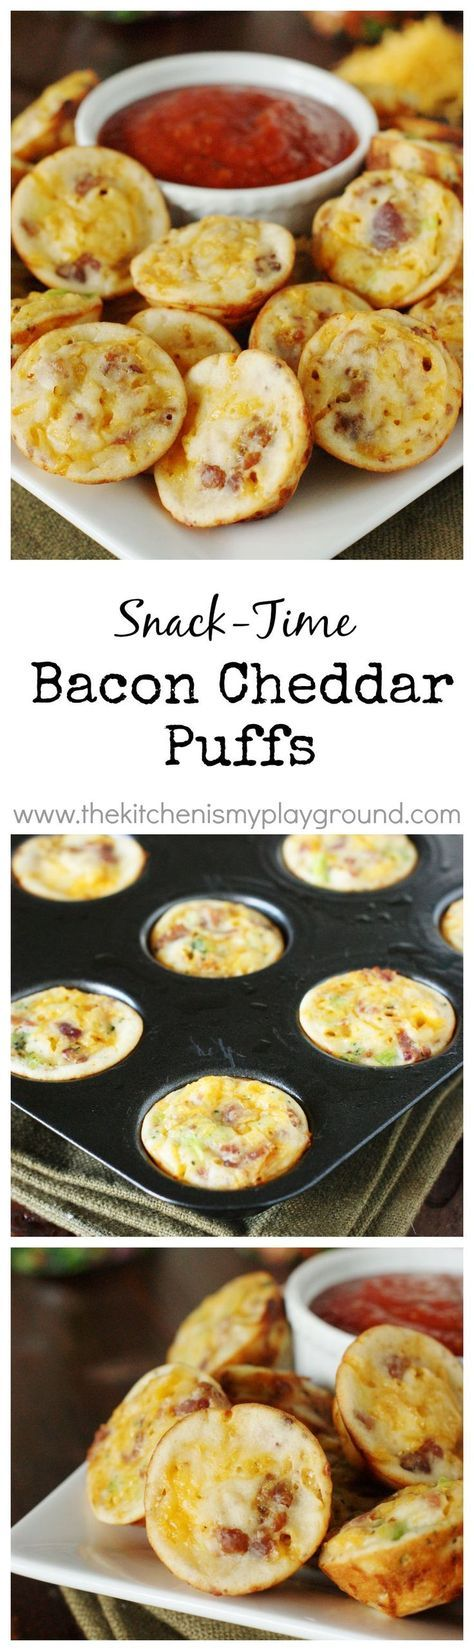 Bacon Cheddar Puffs ~ Perfect for easy snacking! Snack time. Game time. Party time. Or even breakfast! #ad www.thekitchenismyplayground.com